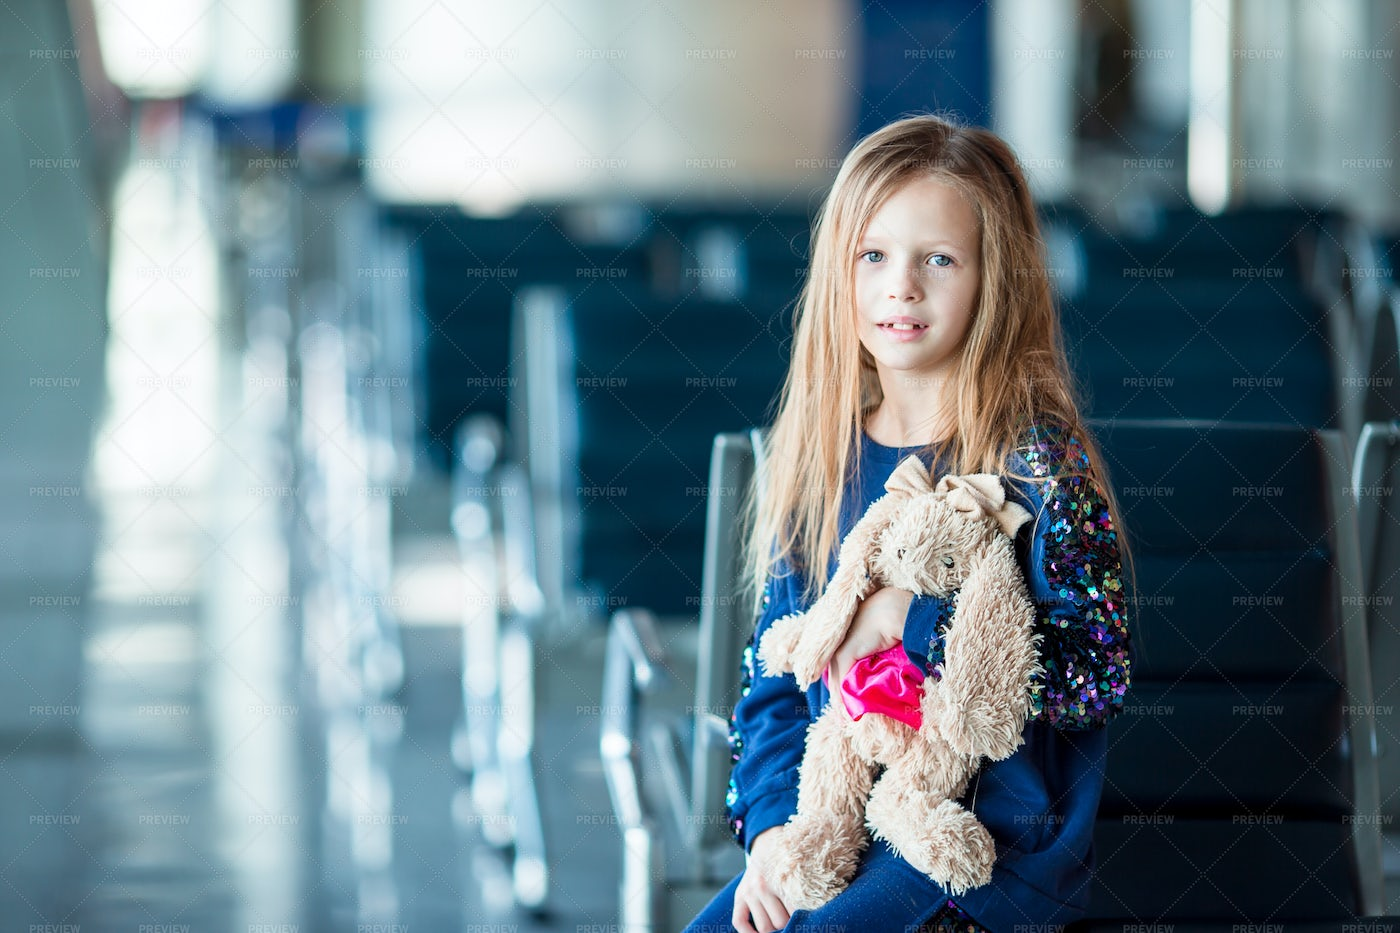 Adorable Little Girl In Airport: Stock Photos